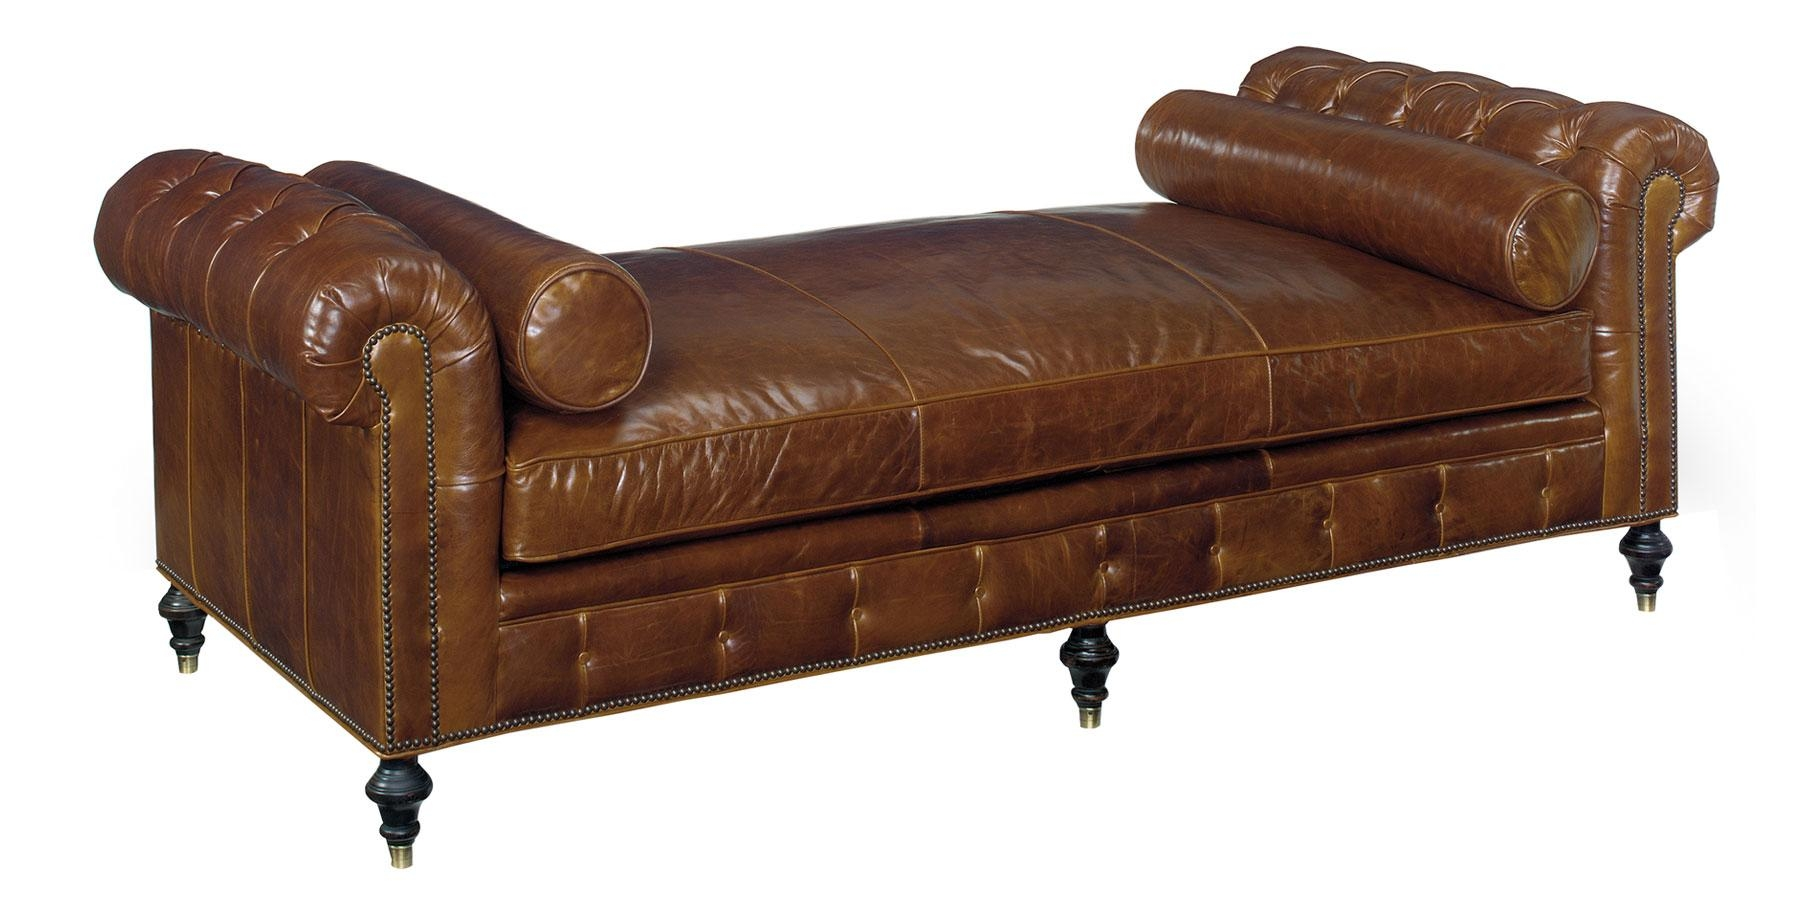 Leather Tufted Chesterfield Daybed With Bench Seat | Club Furniture Within Leather Bench Sofas (View 5 of 22)